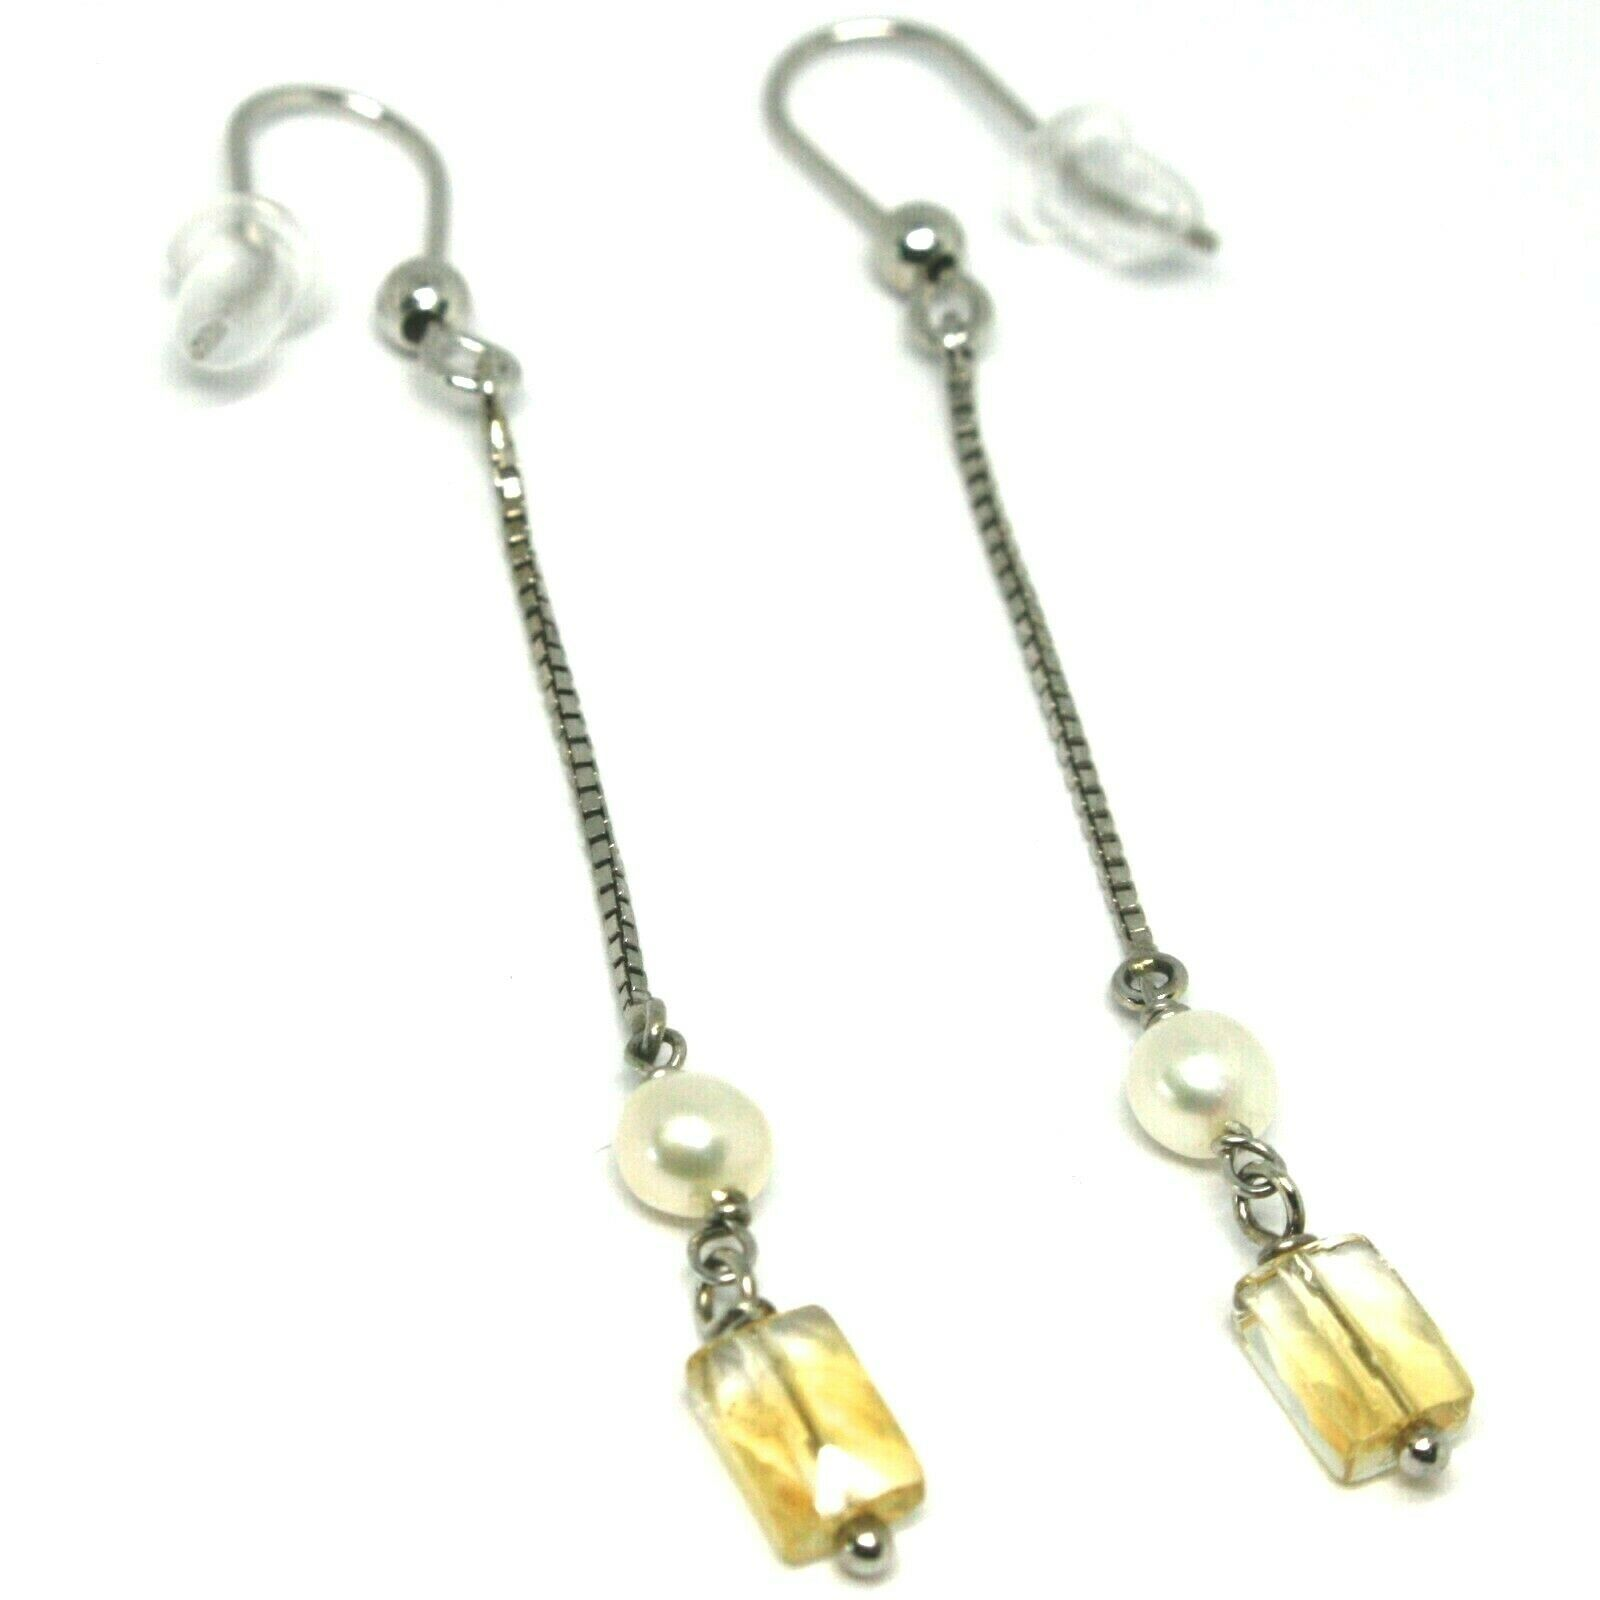 White Gold Earrings 750 18K, Hanging with Rectangle Quartz Citrine, Pearls